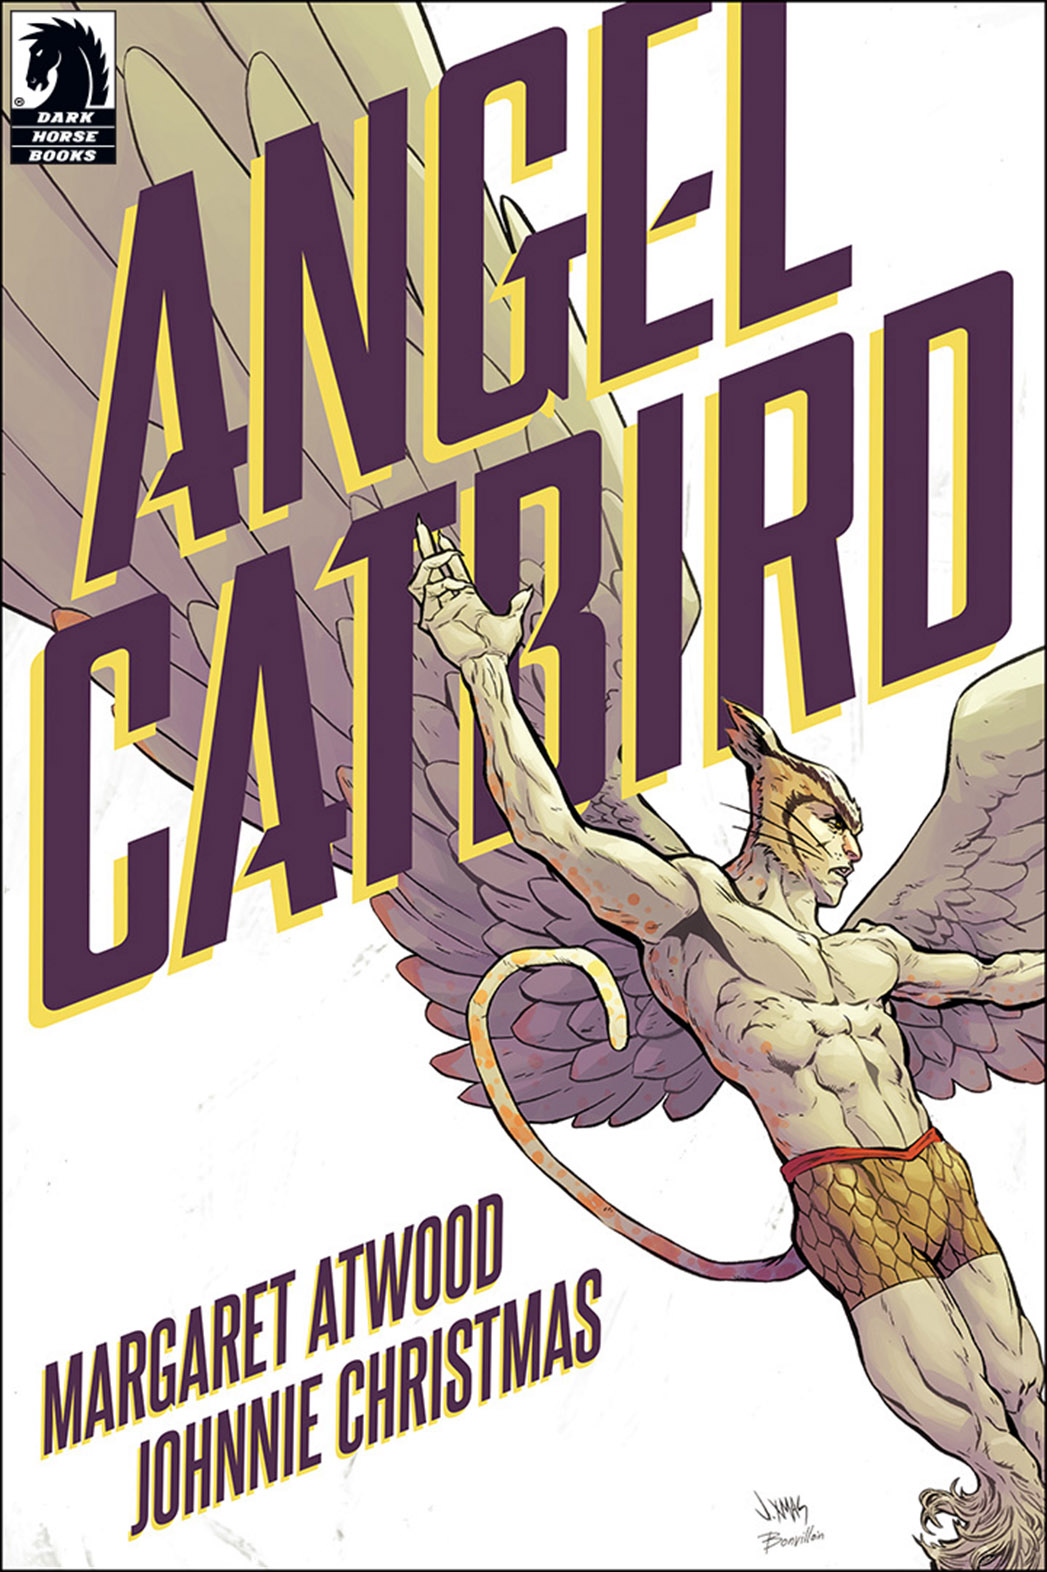 American Library Association Ala Orlando Margaret Atwood Charms Librarians Comics Fans At The